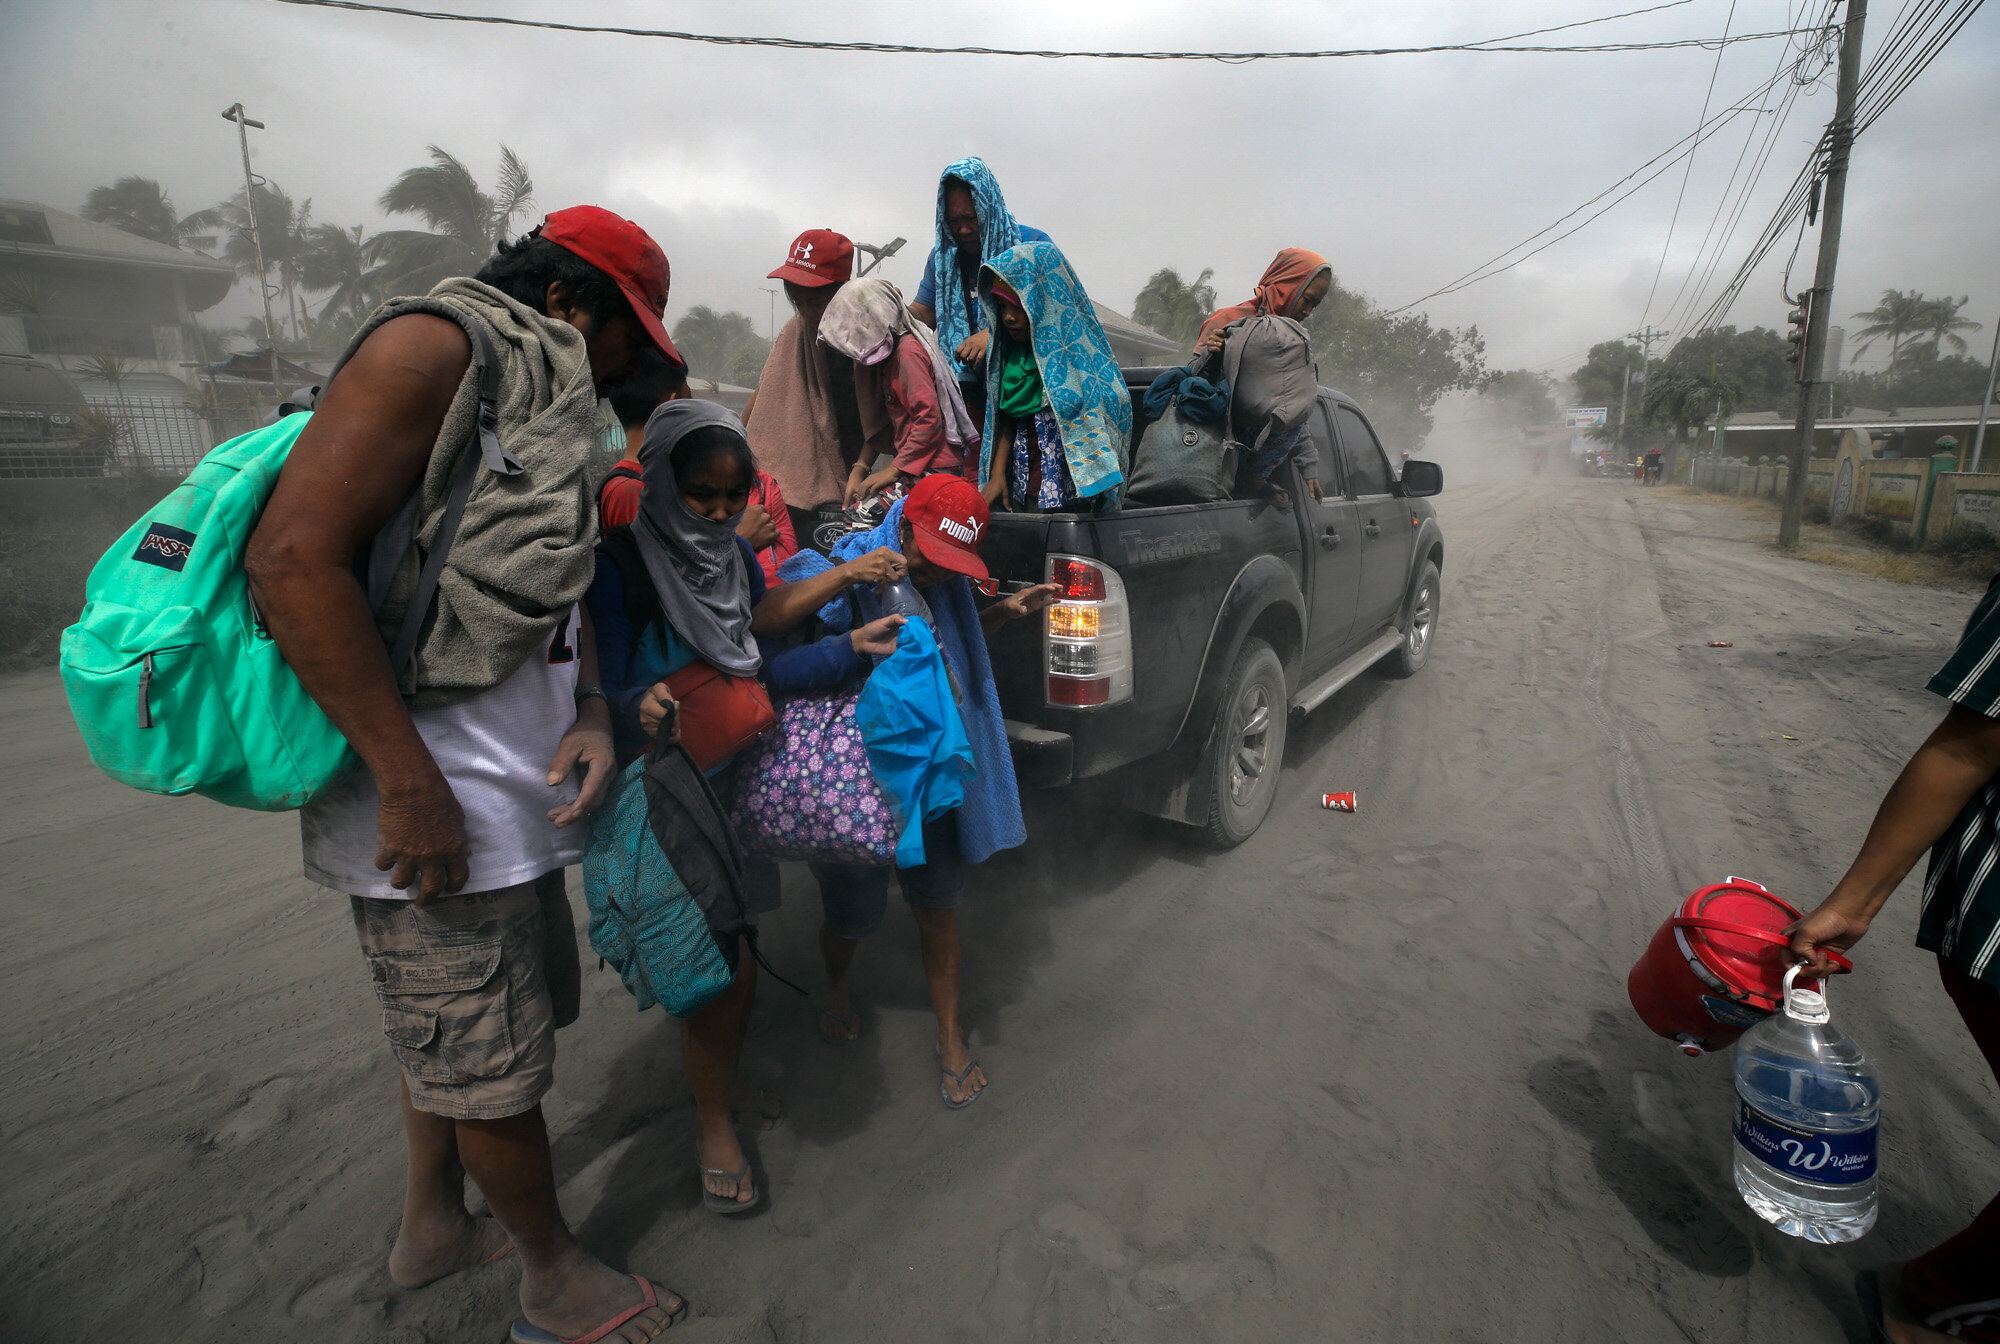 A family evacuates to safer ground as the Taal Volcano spews ash in Lemery, Batangas, southern Philippines on Jan. 13, 2020. (AP Photo/Aaron Favila)